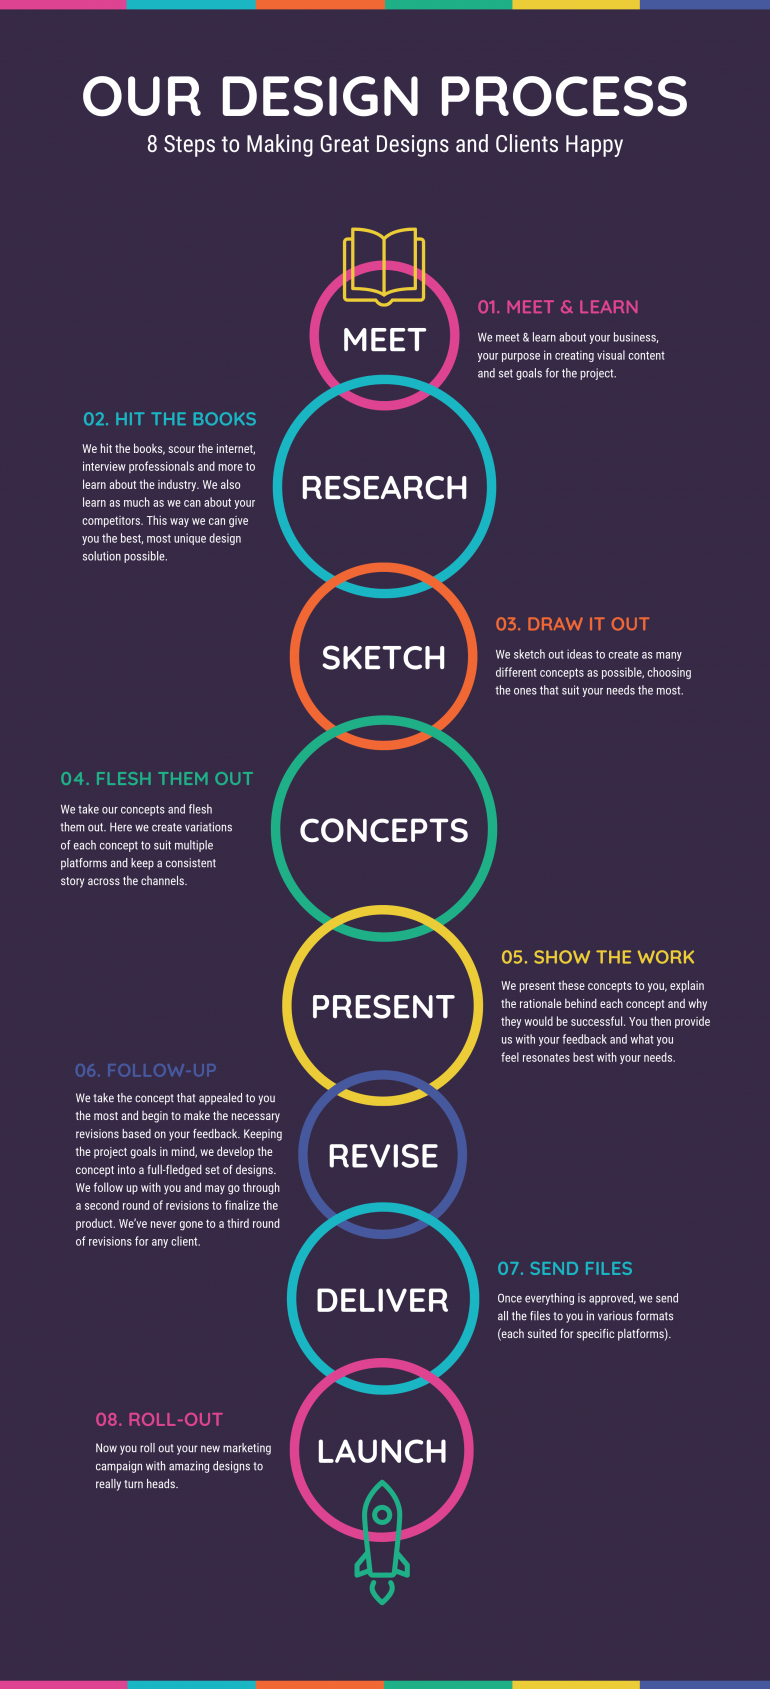 Our Design Process Infographic